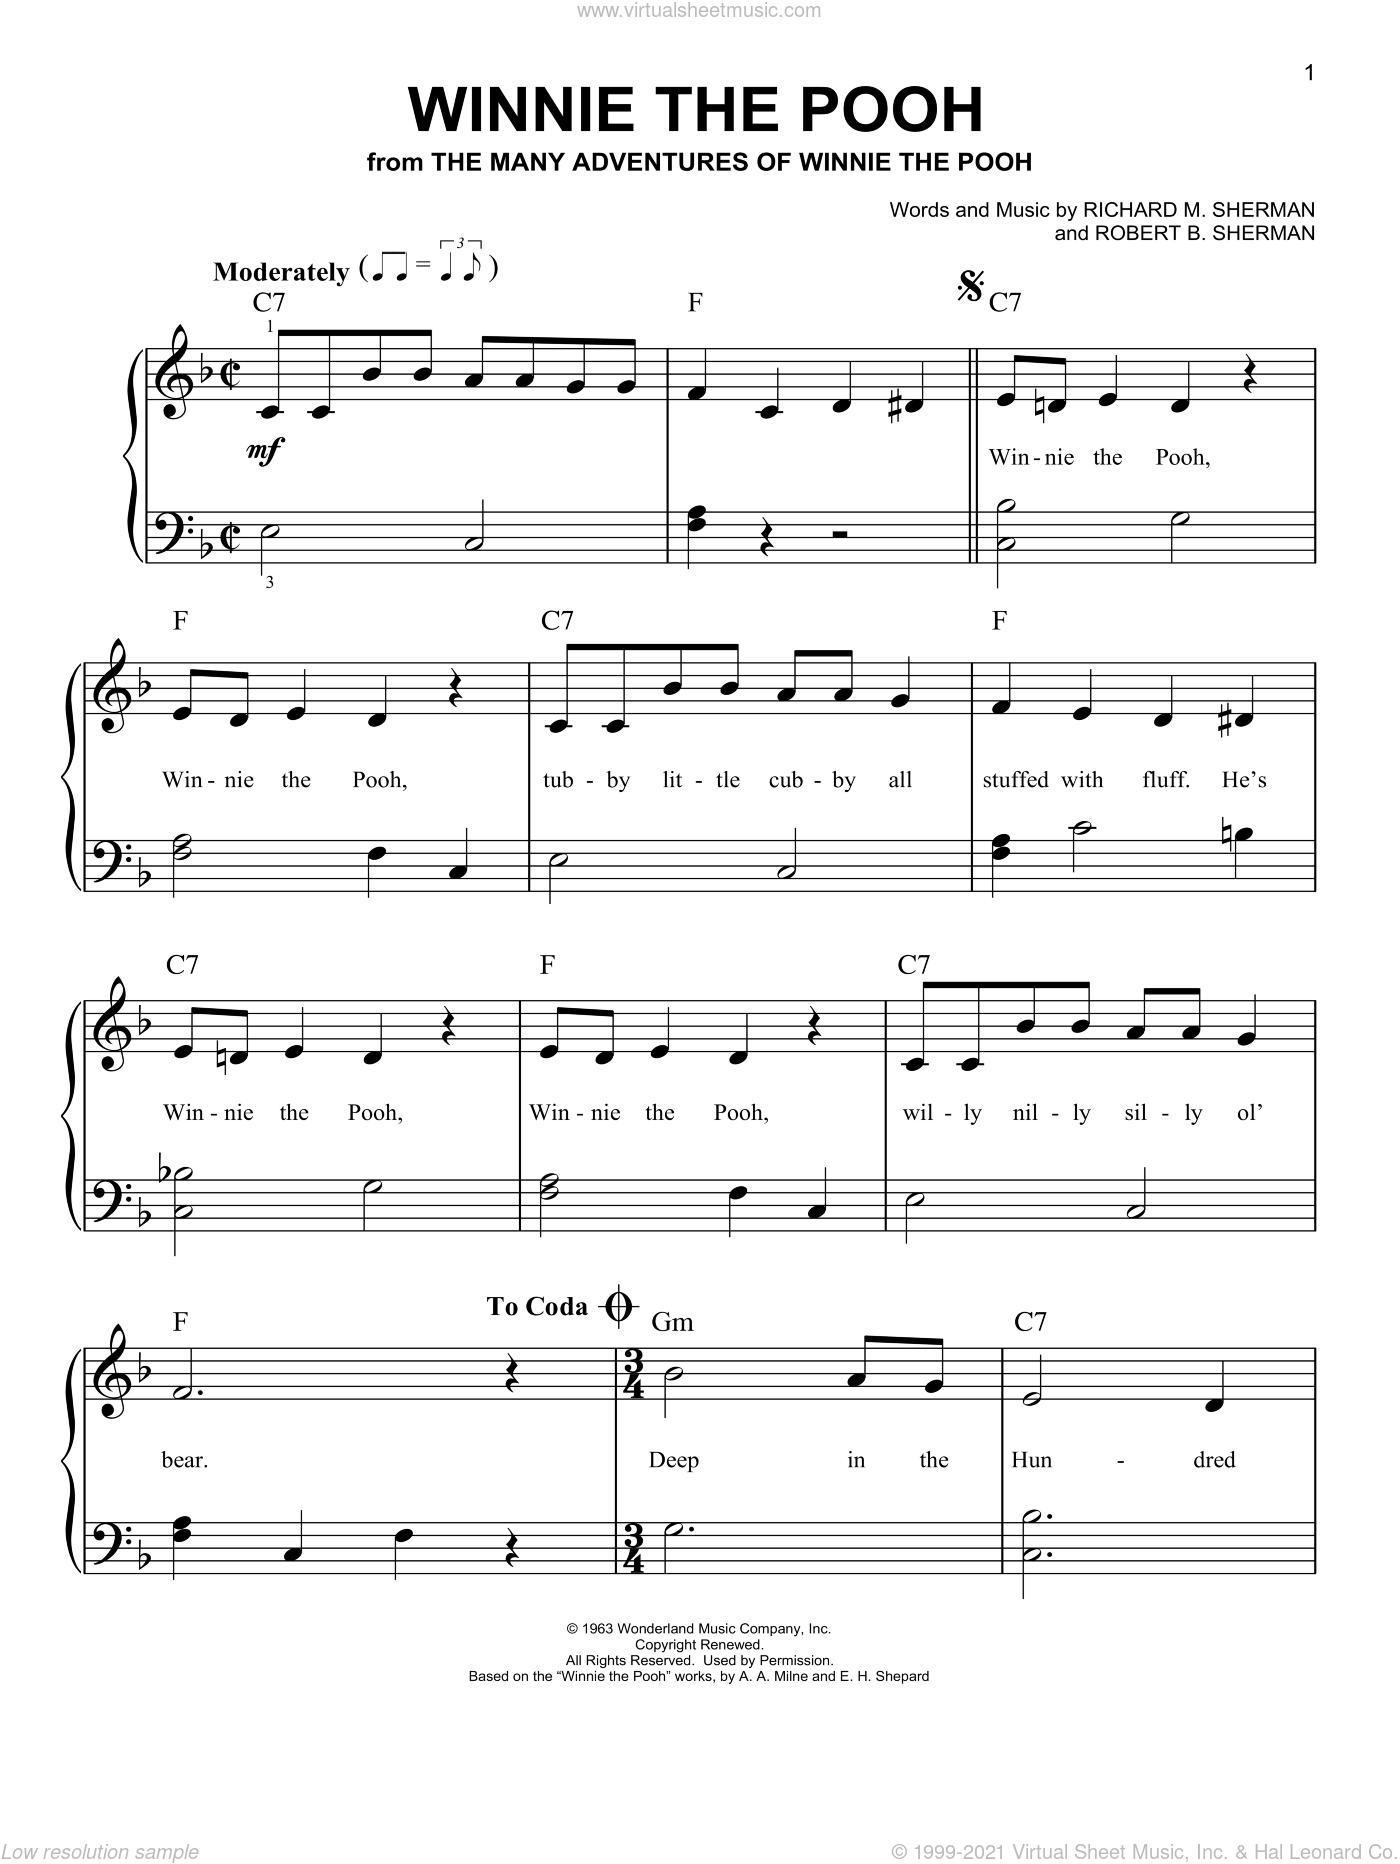 Winnie The Pooh sheet music for piano solo by Robert B. Sherman and Richard M. Sherman, easy skill level